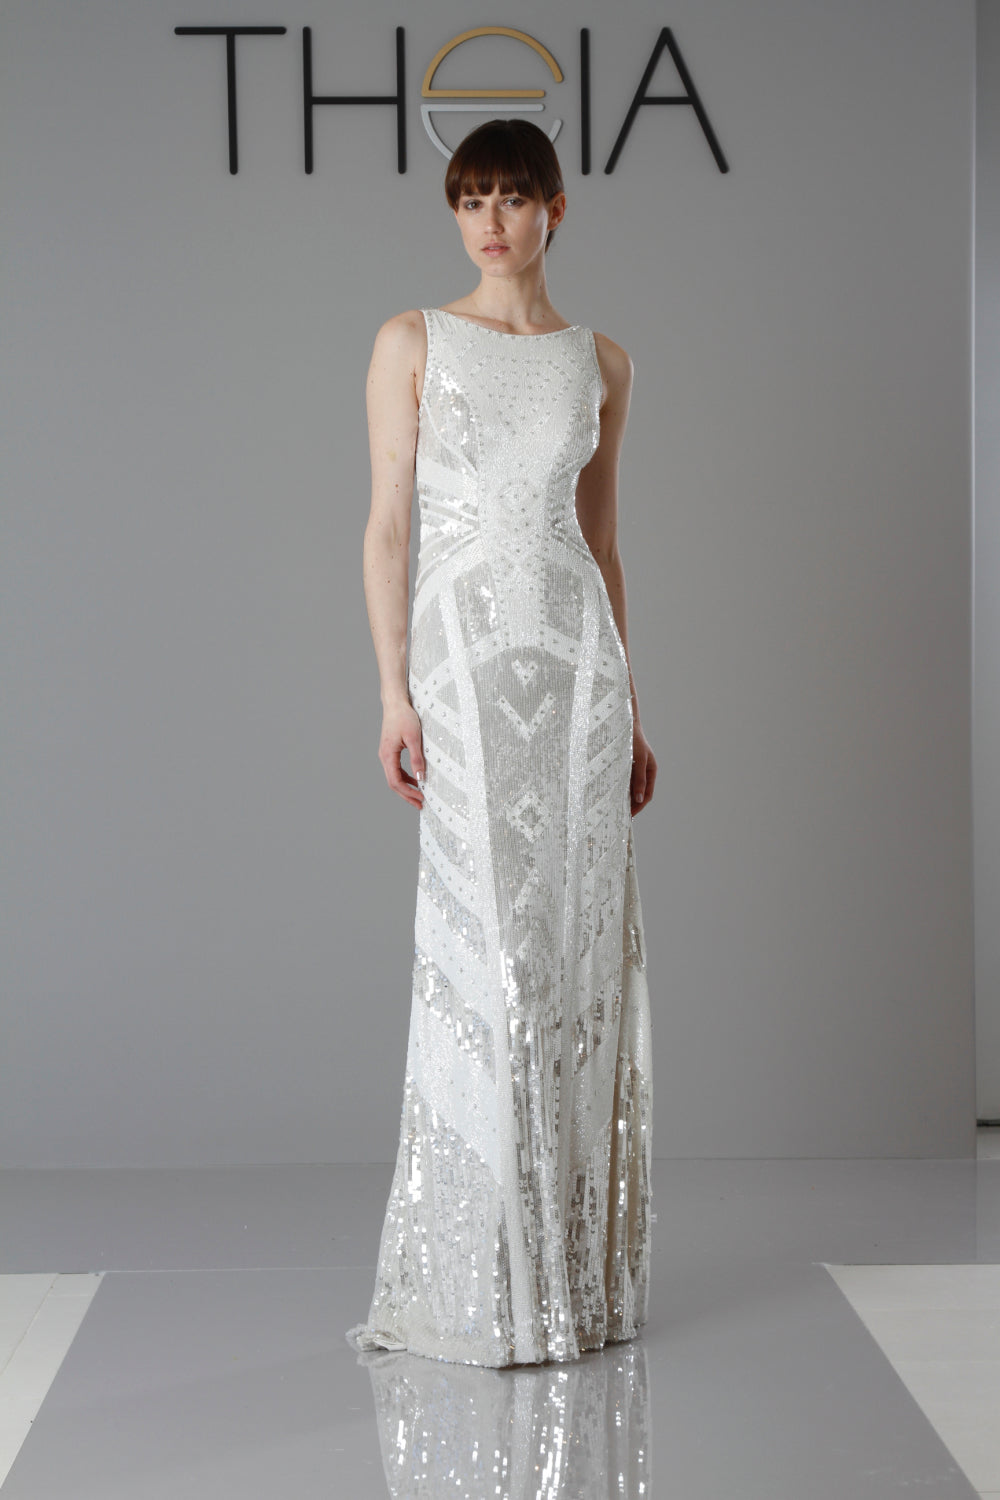 Theia selene 890140 sequin wedding gown adinas bridal theia selene 890140 sequin wedding gown junglespirit Image collections